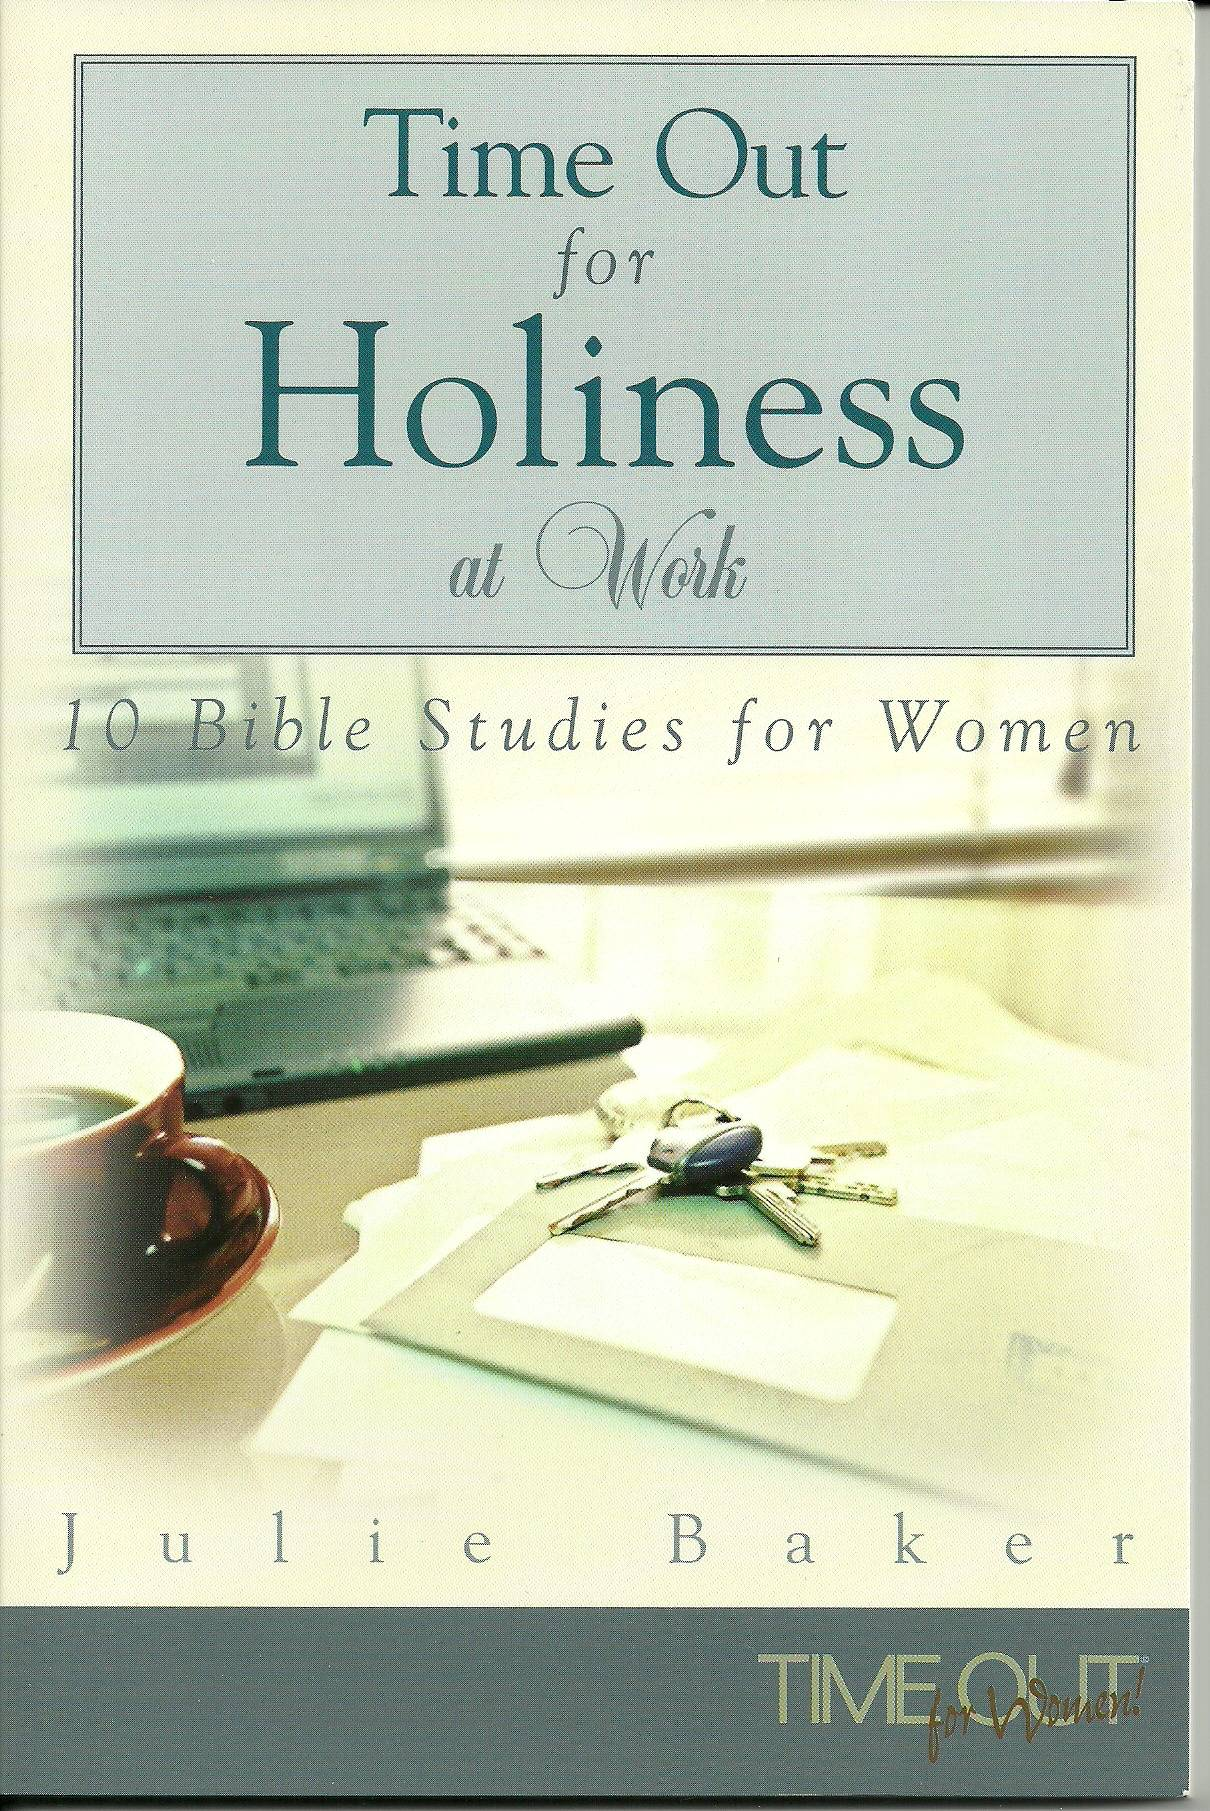 TimeOut for Holiness at Work